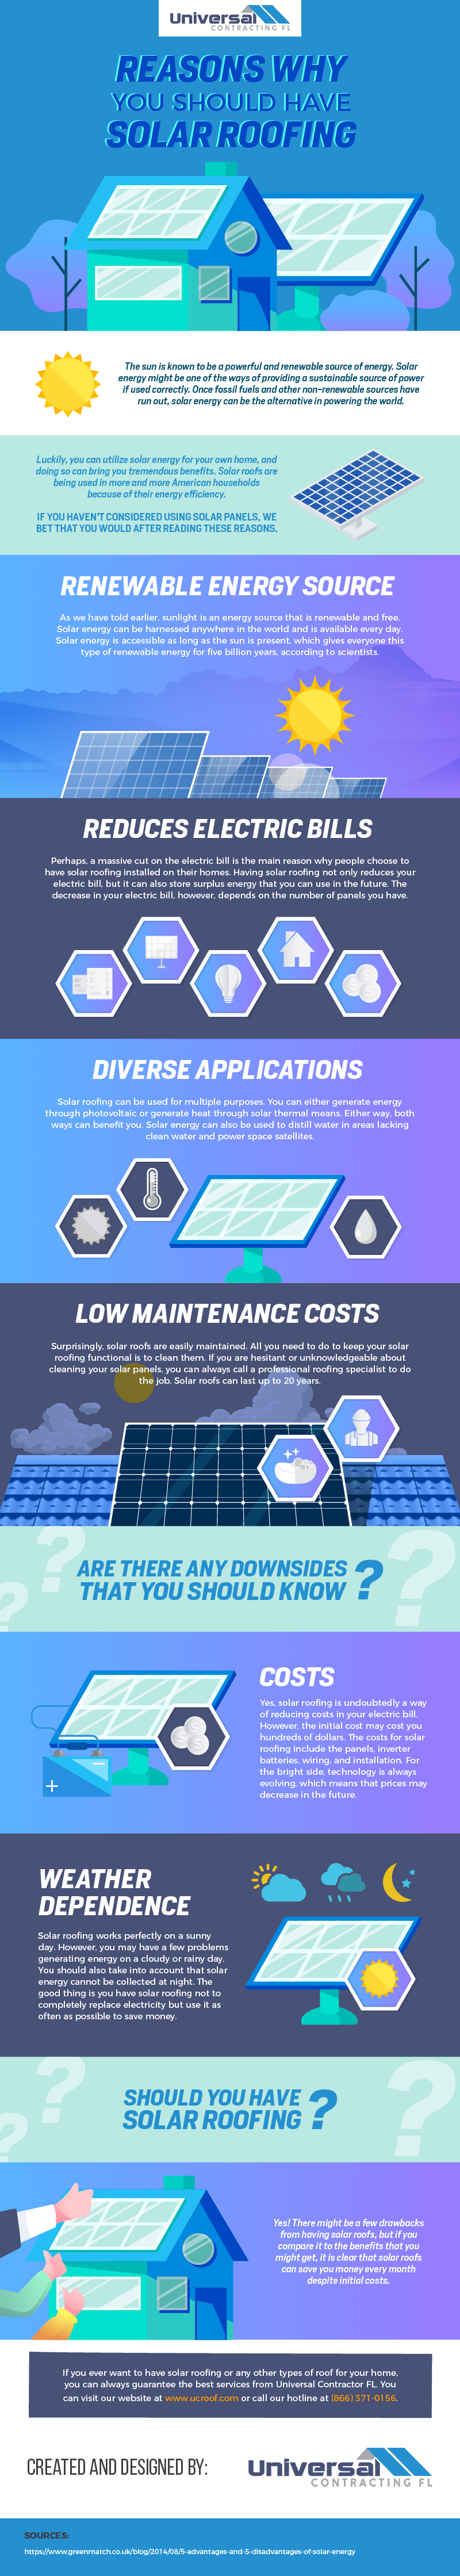 Reasons-why-you-should-have-solar-roofing